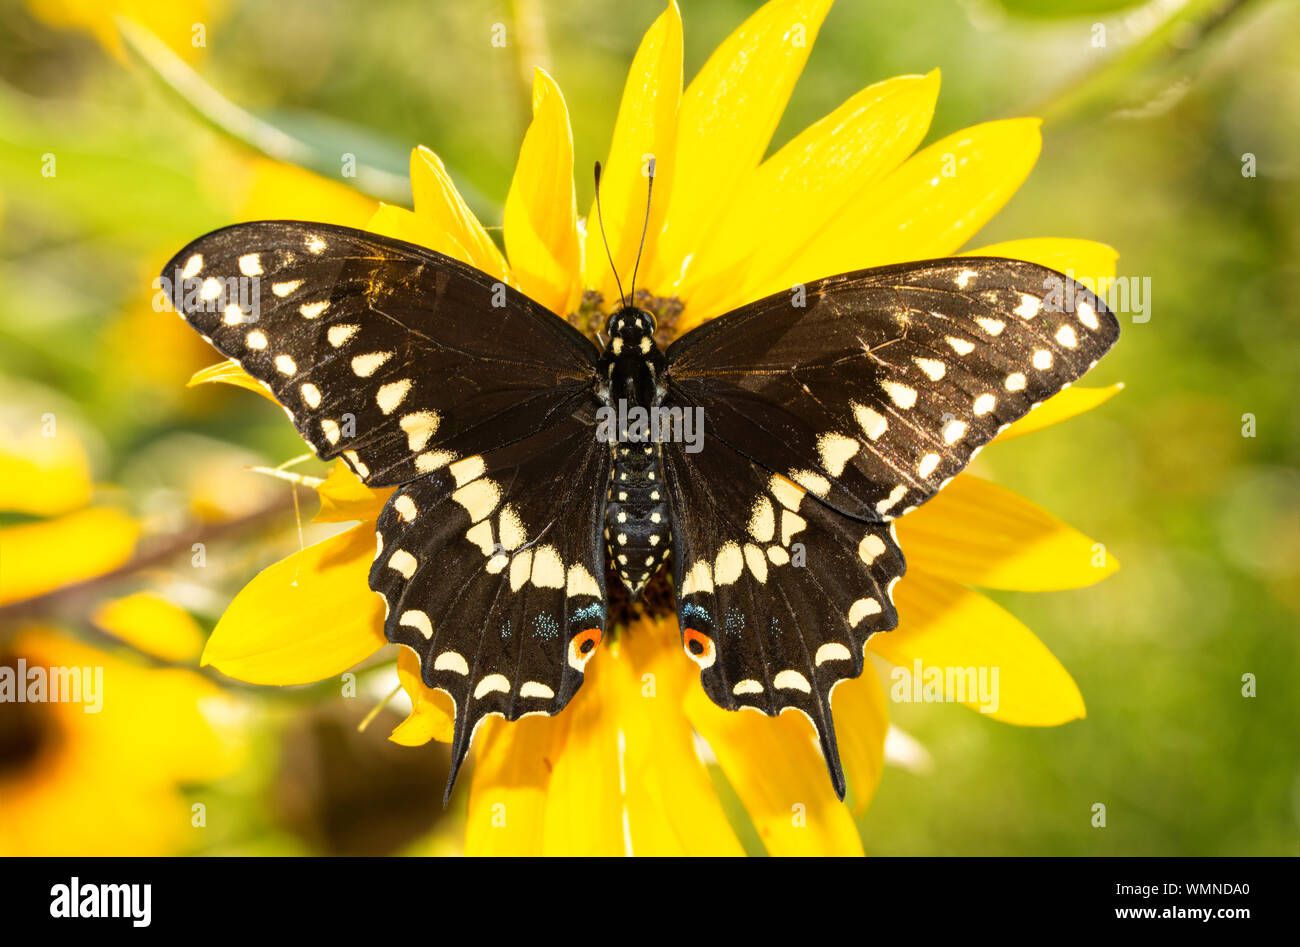 Full dorsal view of open wings of an Eastern Black Swallowtail butterfly on a native Sunflower in brilliant morning sun Stock Photo